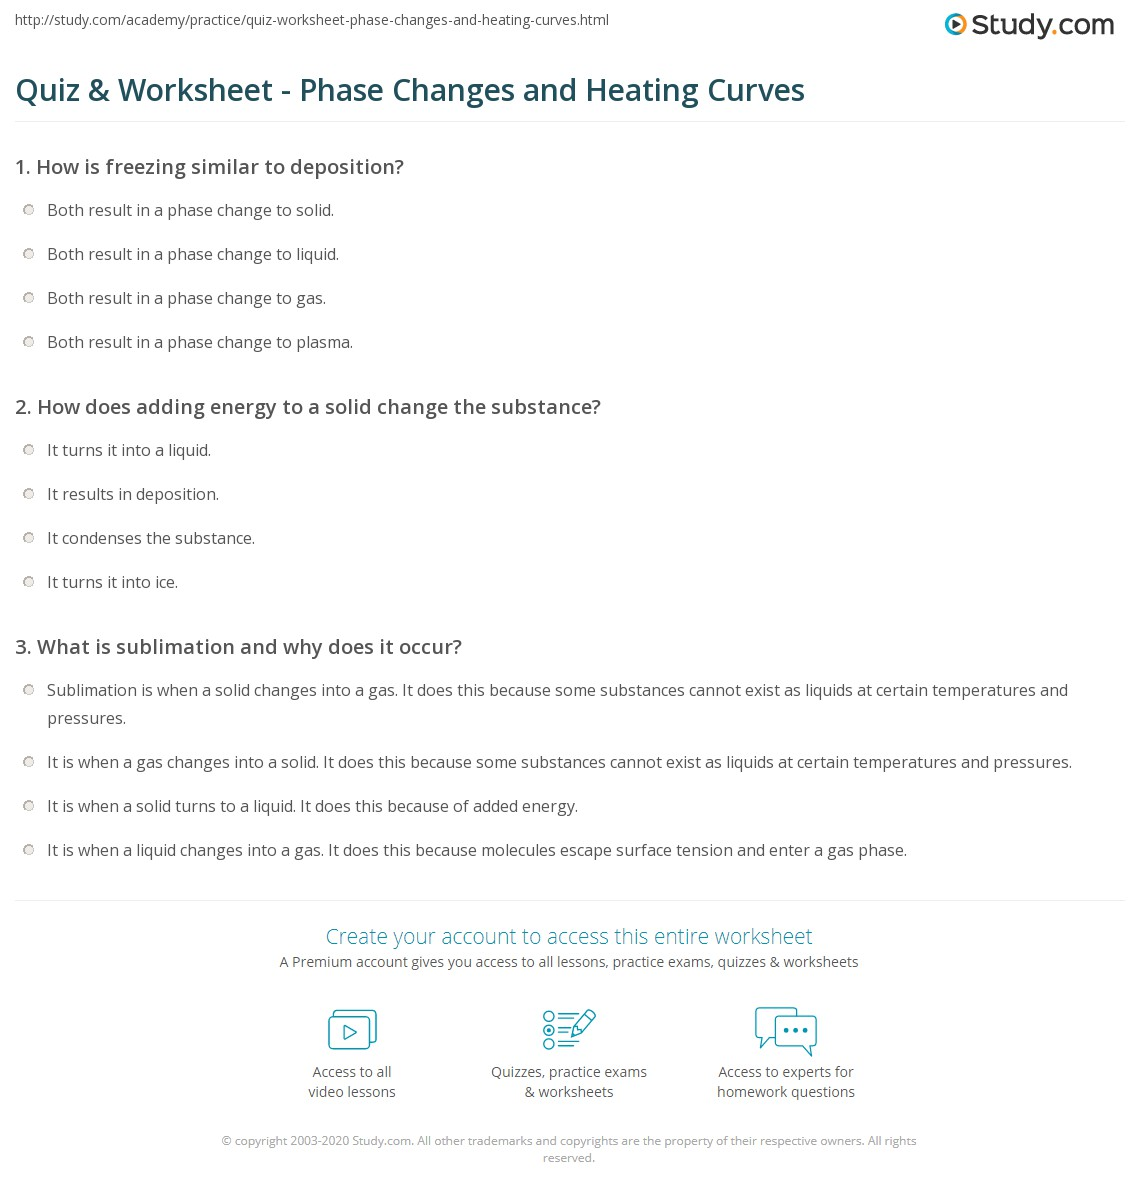 Quiz & Worksheet - Phase Changes and Heating Curves | Study.com